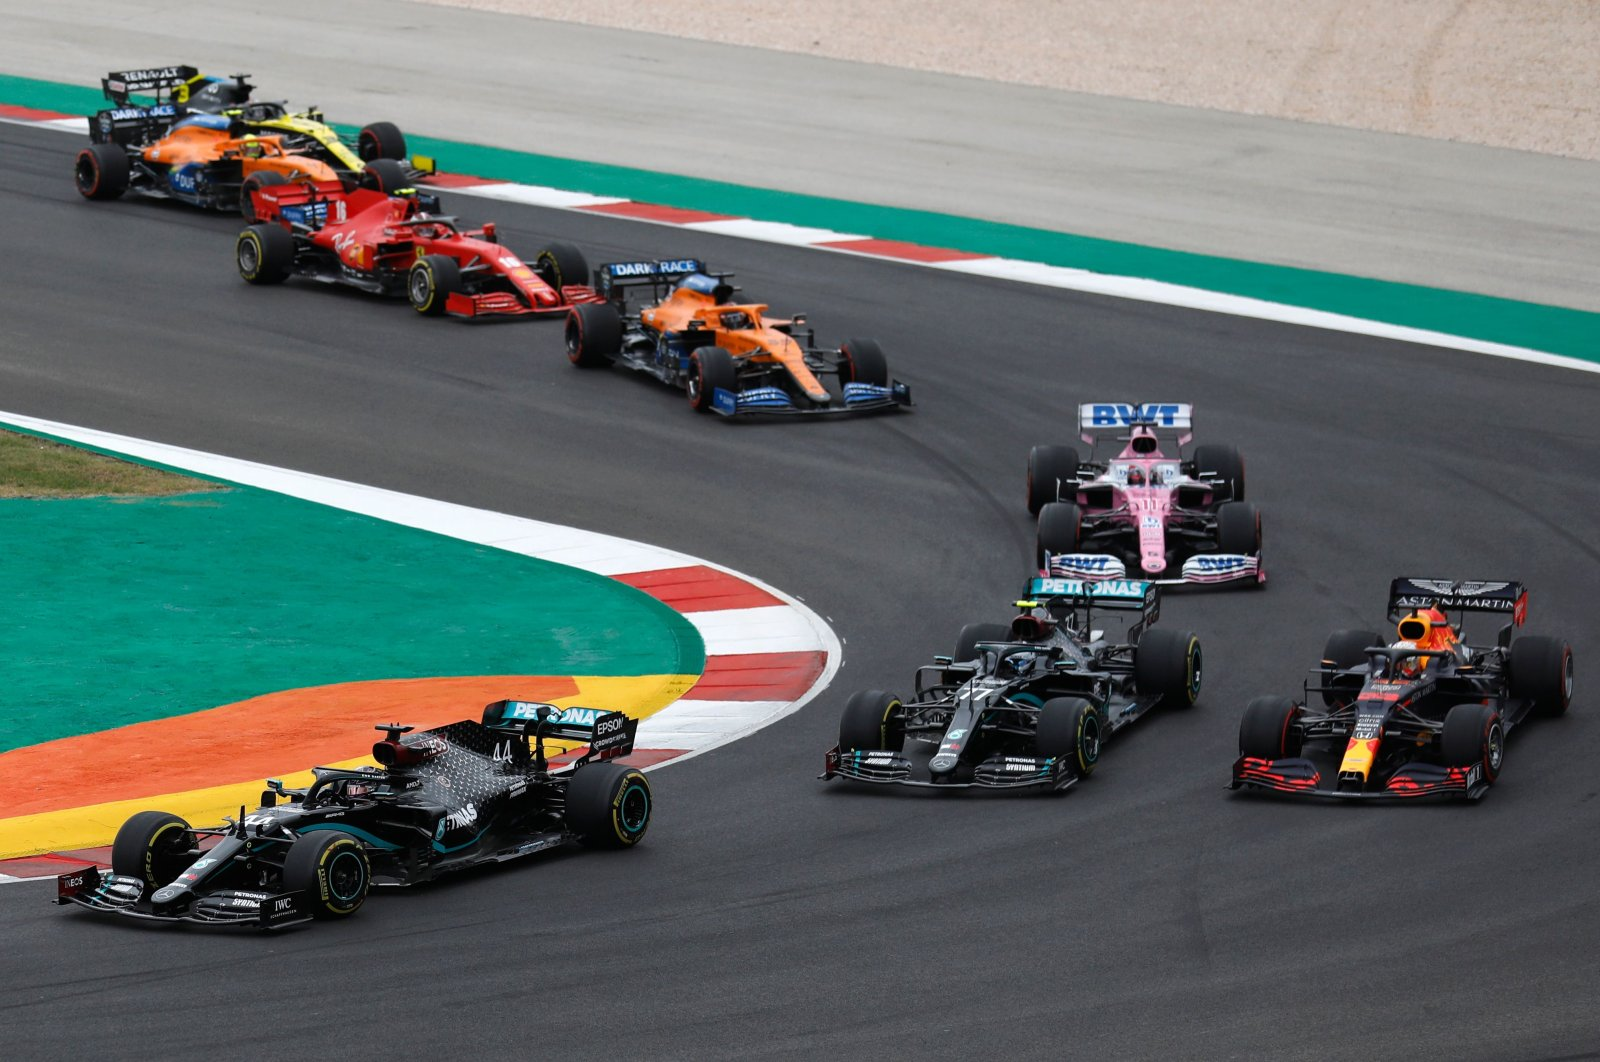 Lewis Hamilton leads the pack during Grand Prix in Portimao, Portugal, Oct. 25, 2020. (AFP Photo)